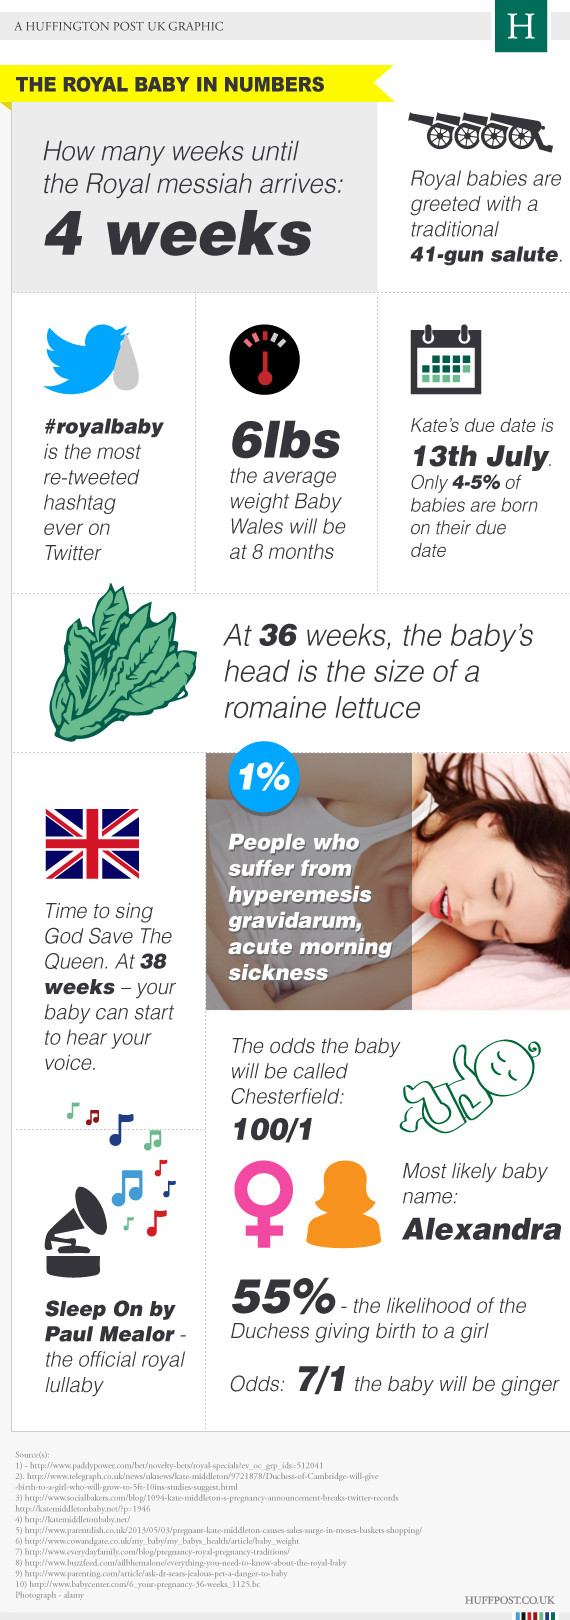 The Royal Baby by Numbers